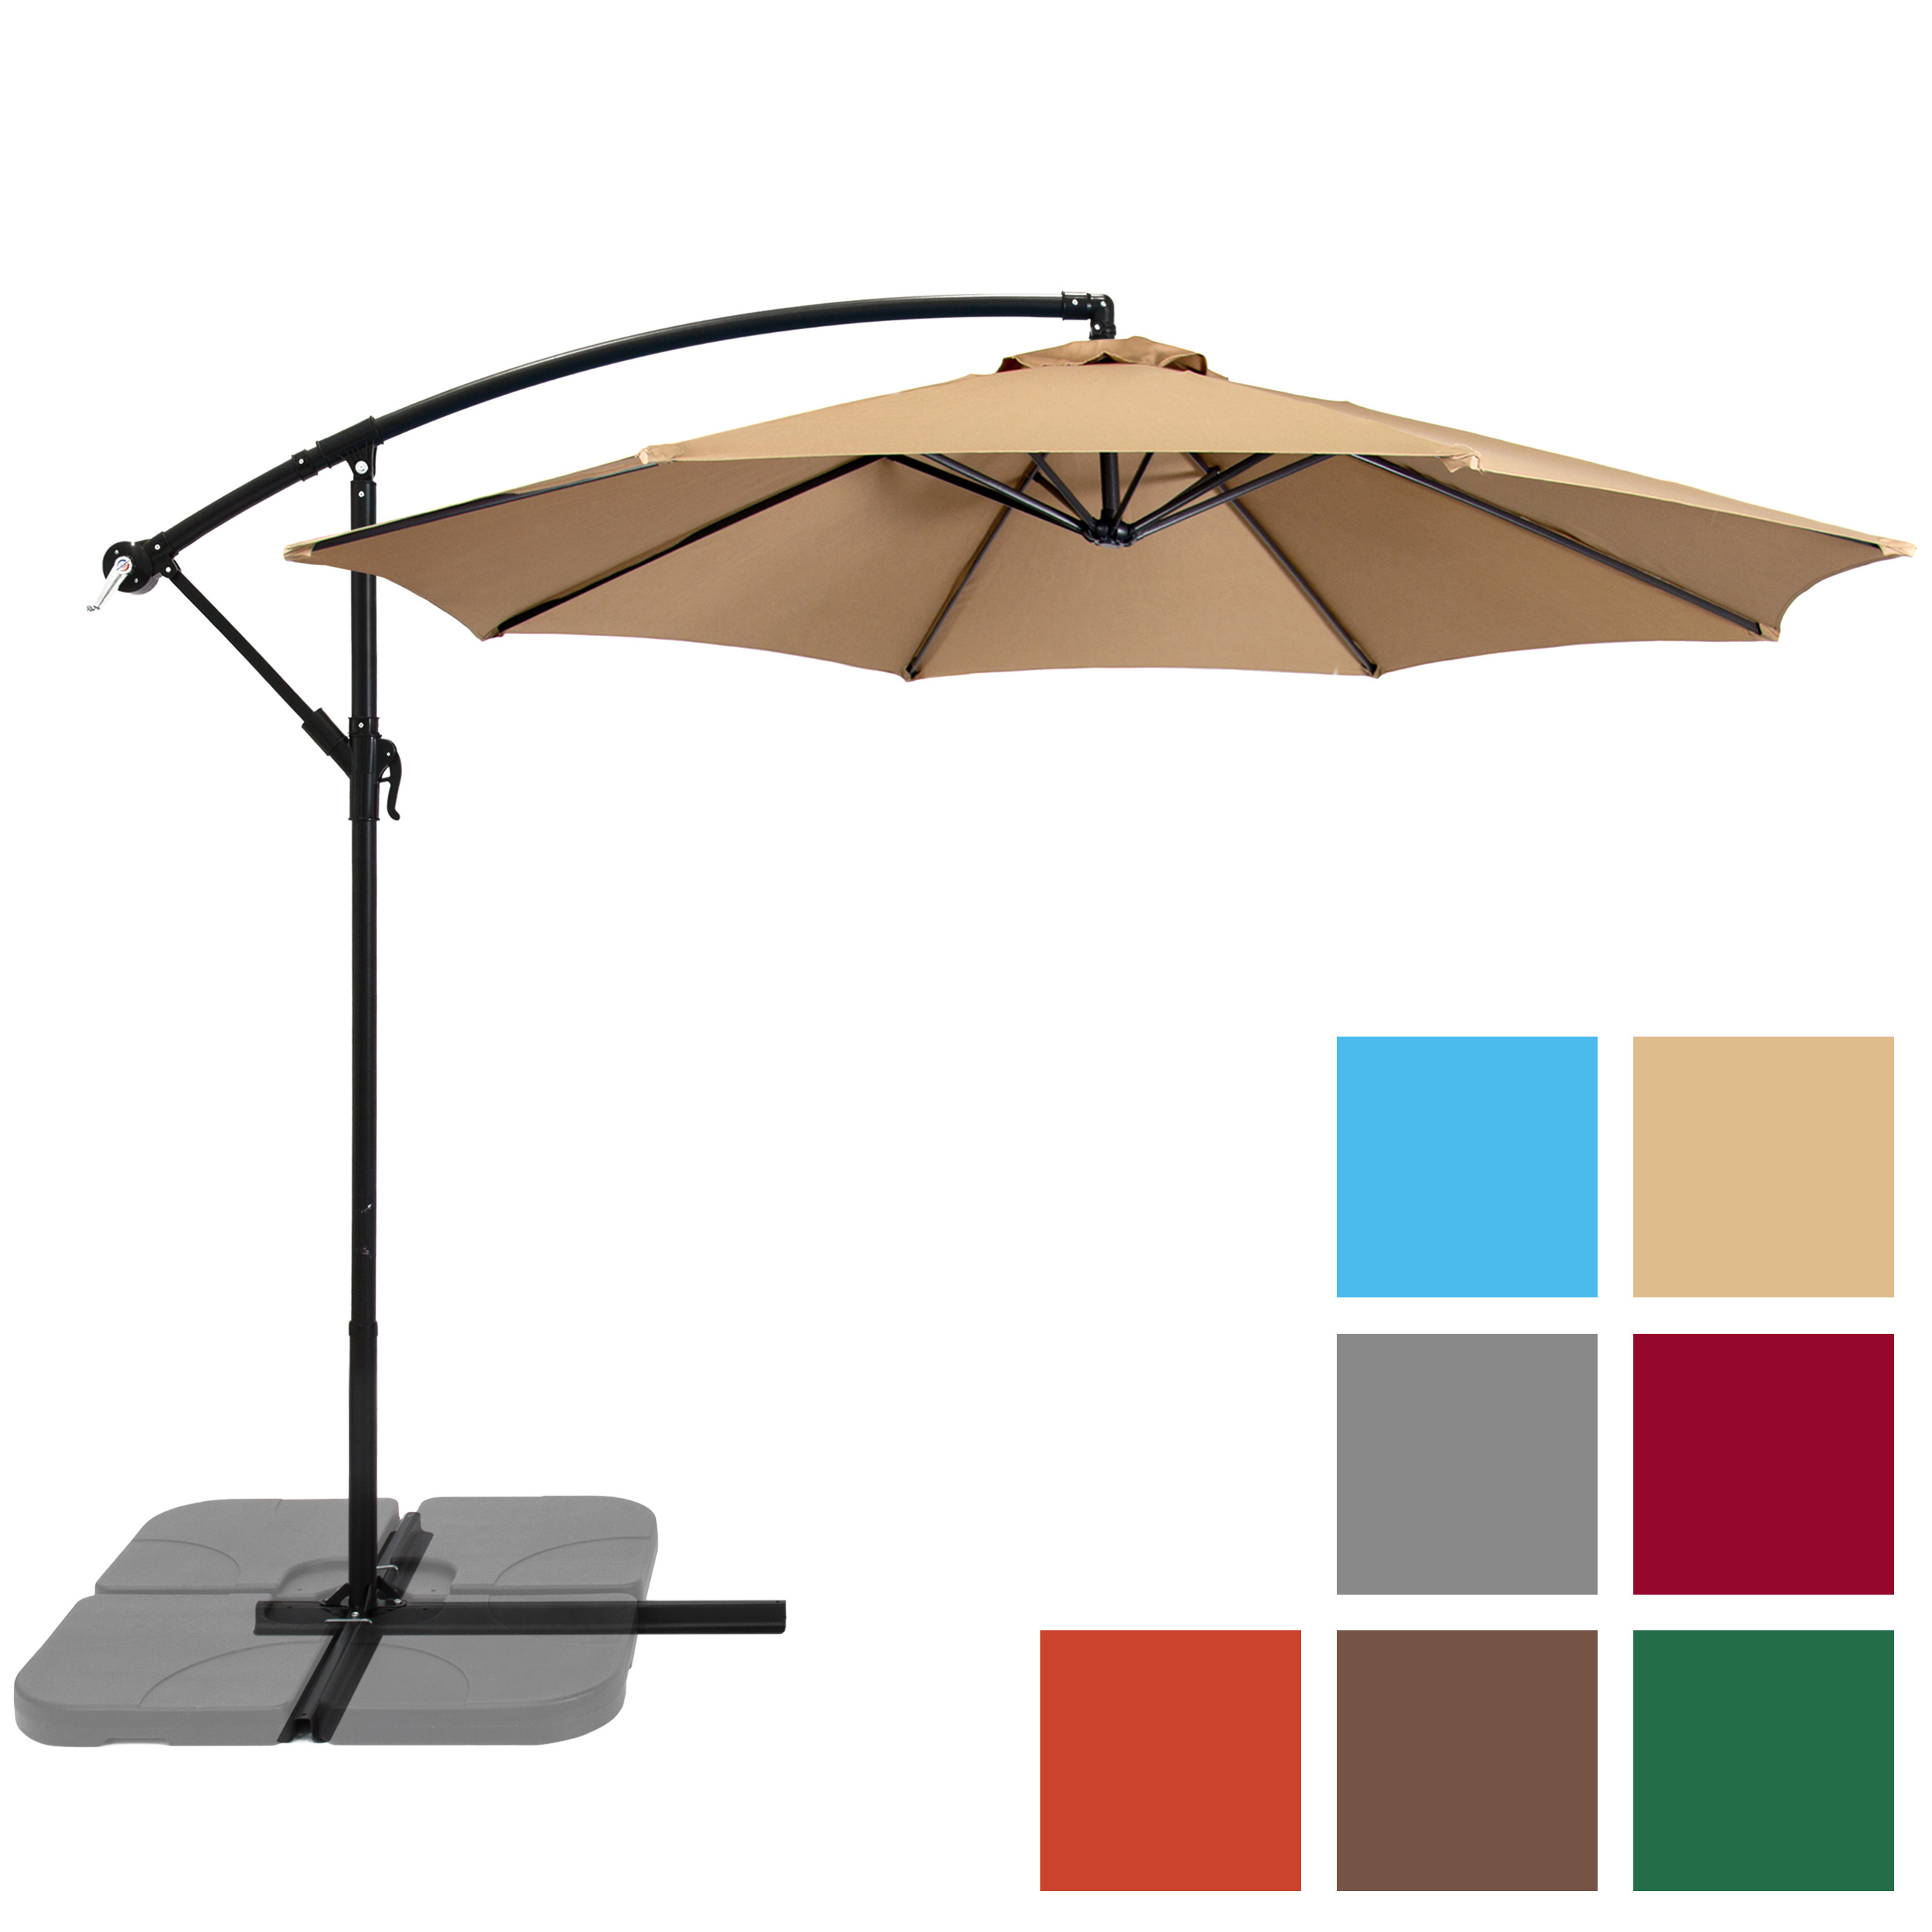 Best Choice Products Patio Umbrella Offset 10' Hanging Umbrella Outdoor Market Umbrella... by Patio Umbrellas